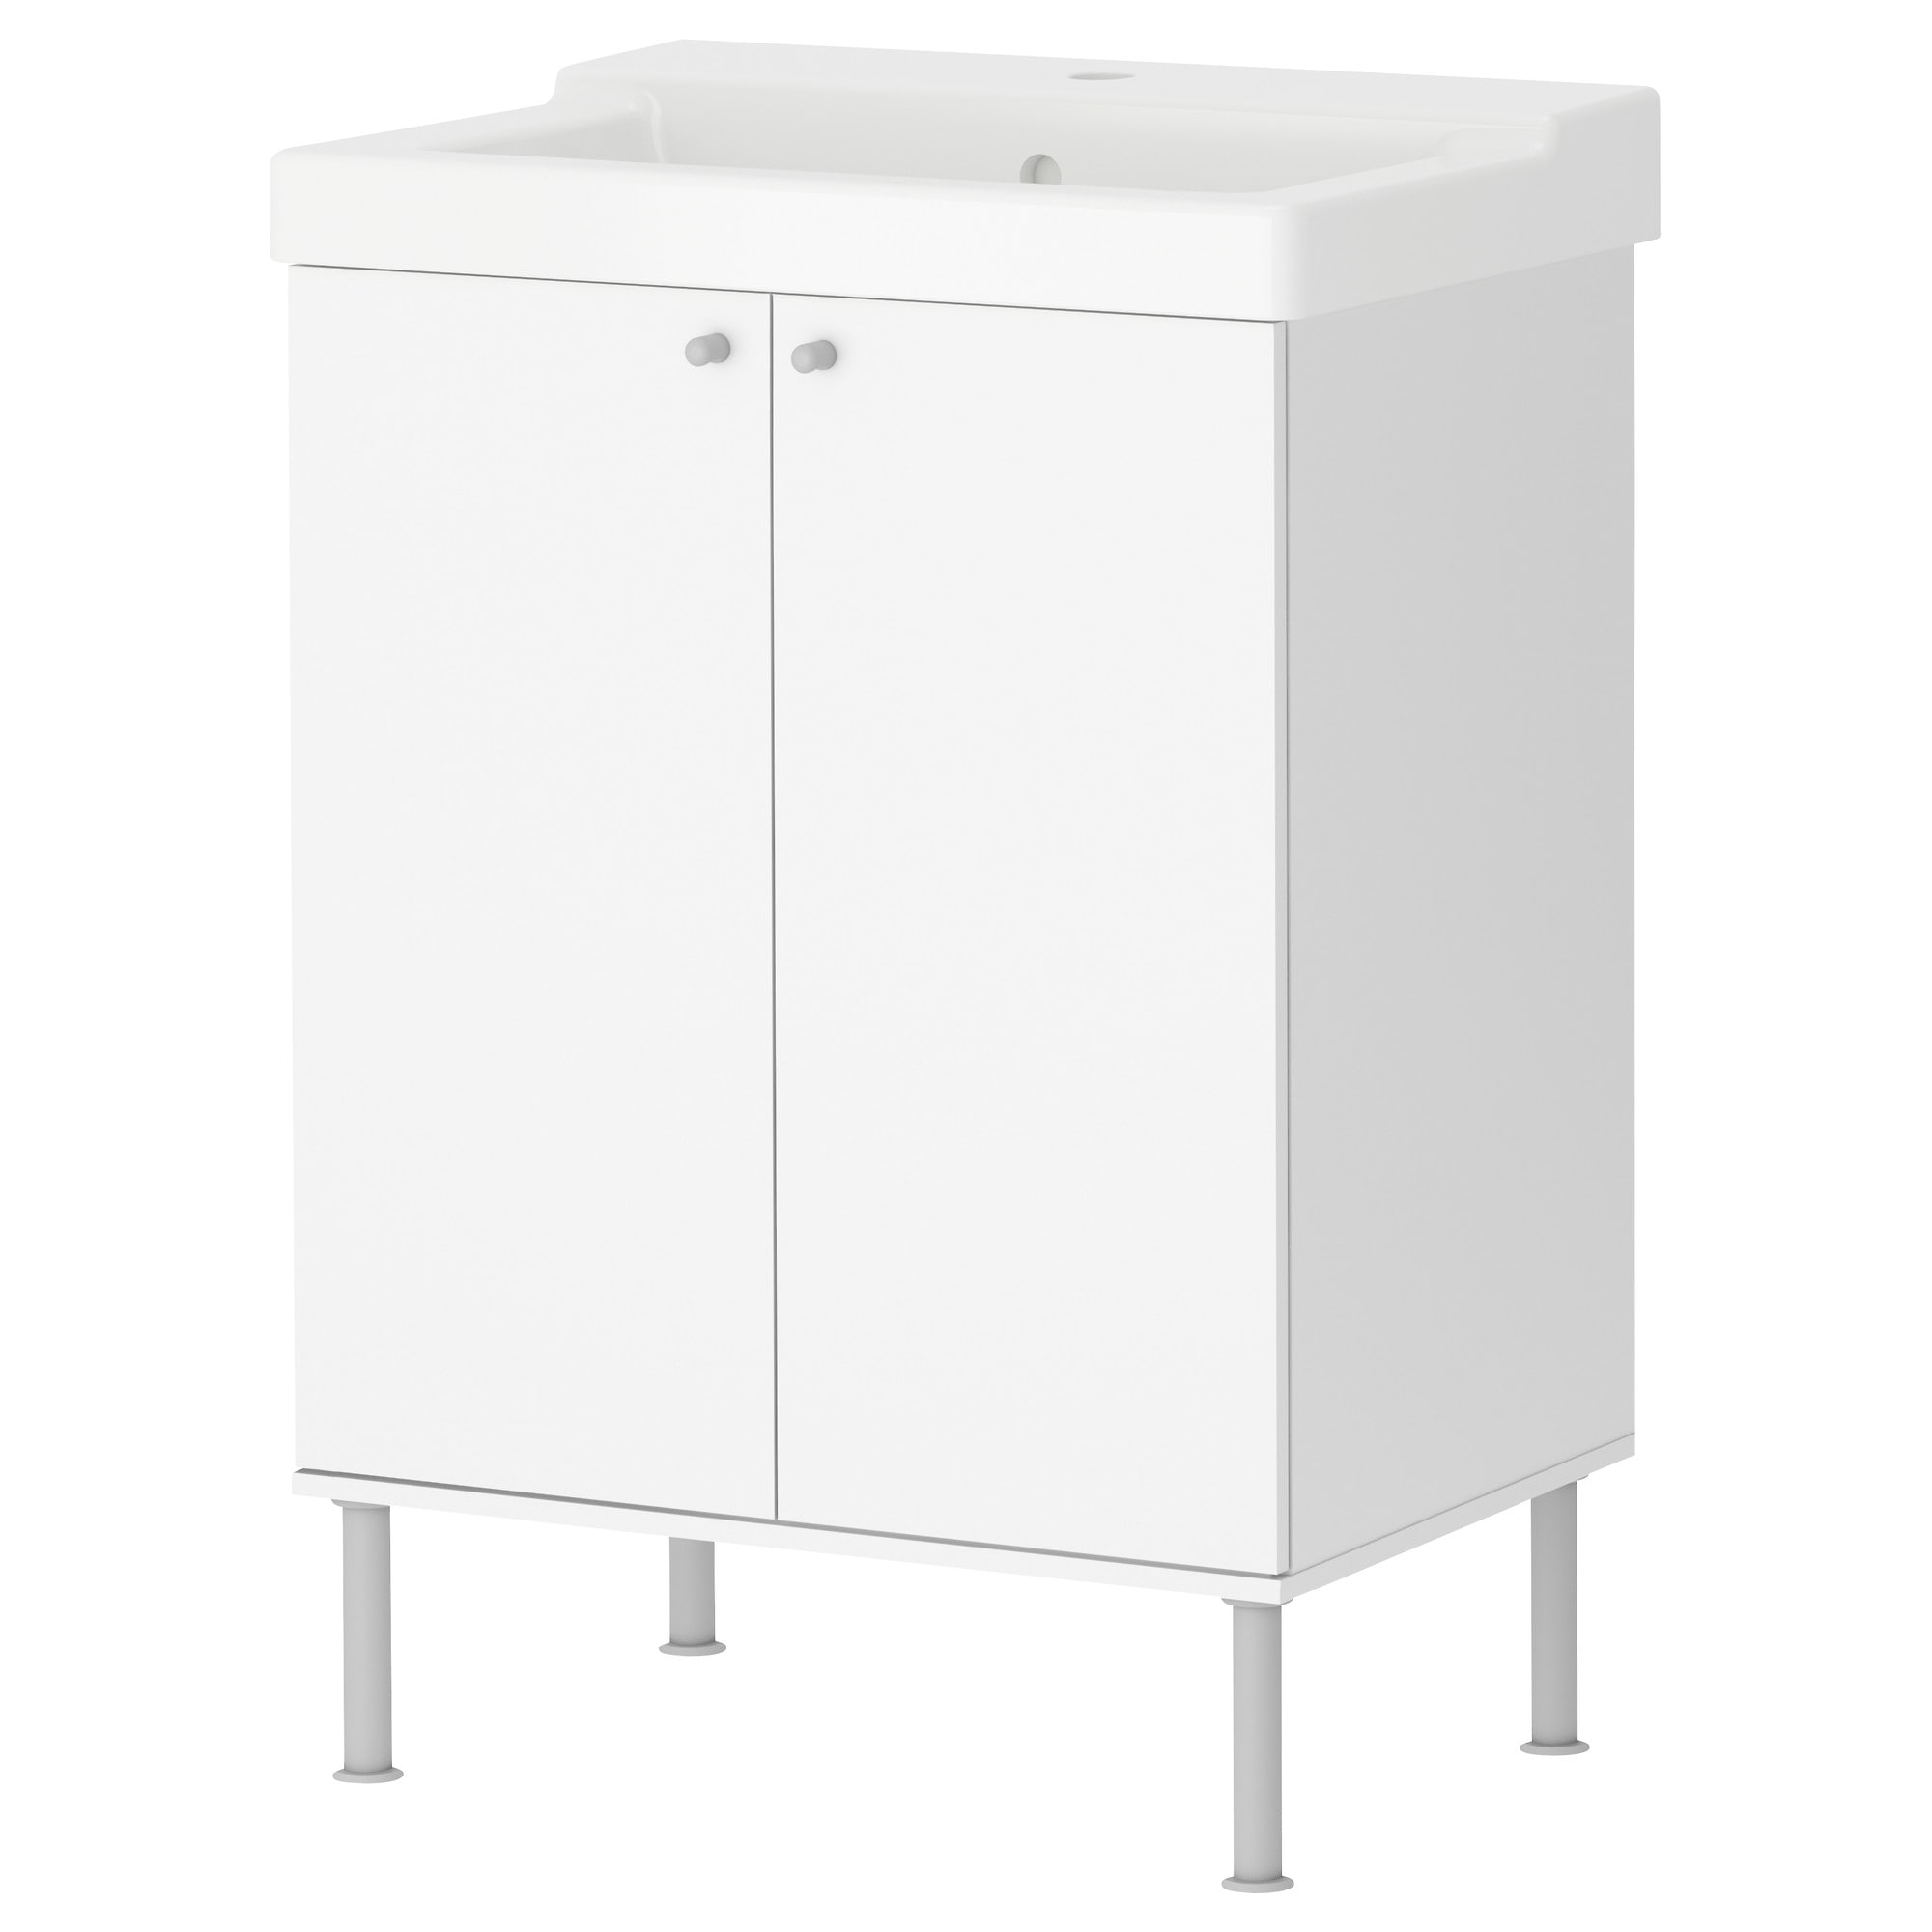 Bathroom Base Cabinets - IKEA